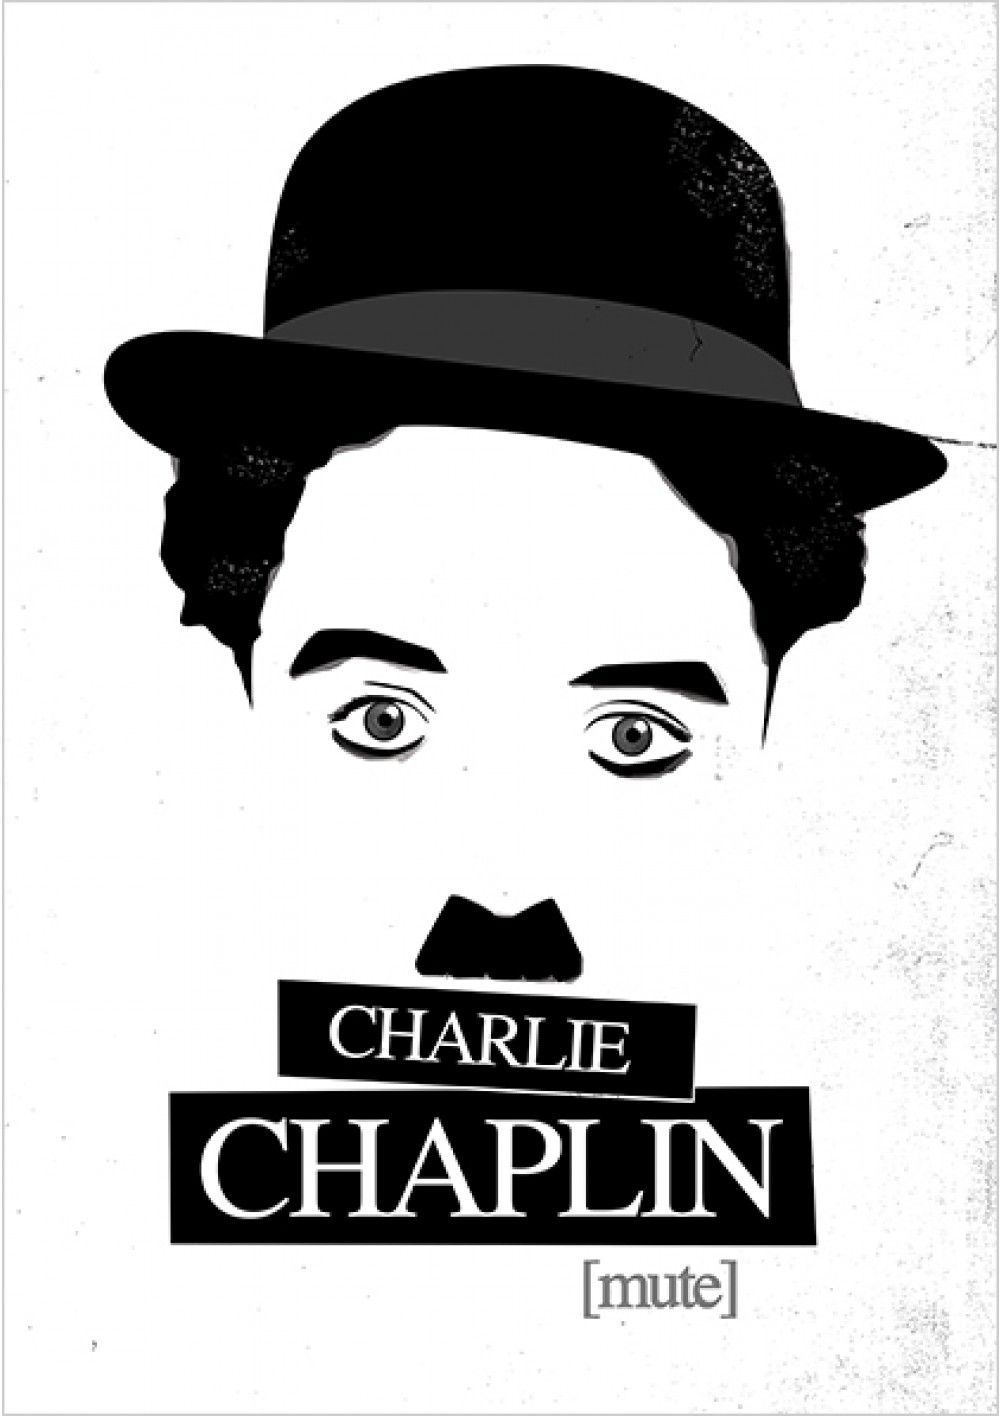 charlie chaplin charlie chaplin com dia filmes posters minimalistas bookmarkers. Black Bedroom Furniture Sets. Home Design Ideas